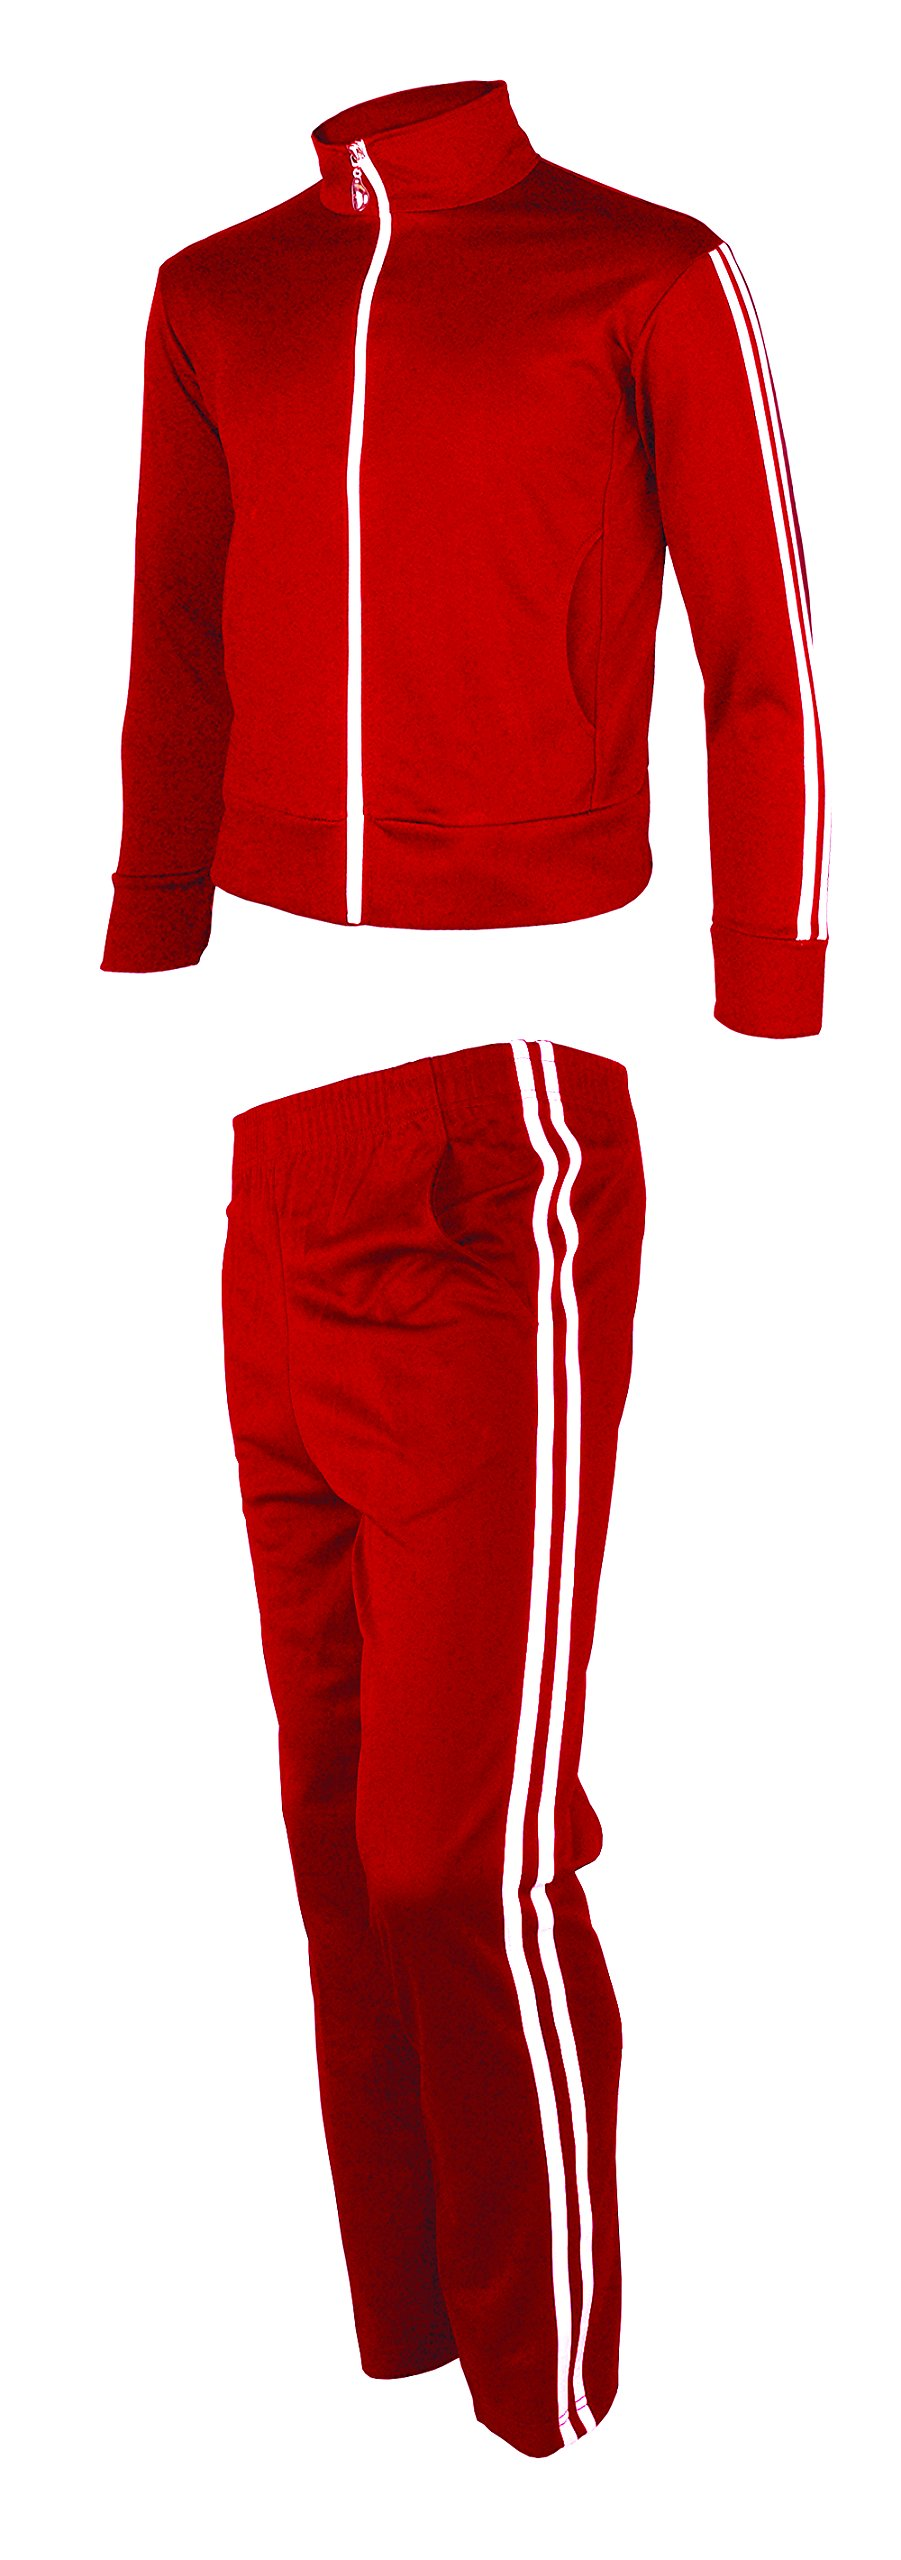 myglory77mall Men's Running Jogging Track Suit Jacket and Pants Warm up Pants Gym Training Wear M US(XL Asian Tag) Red